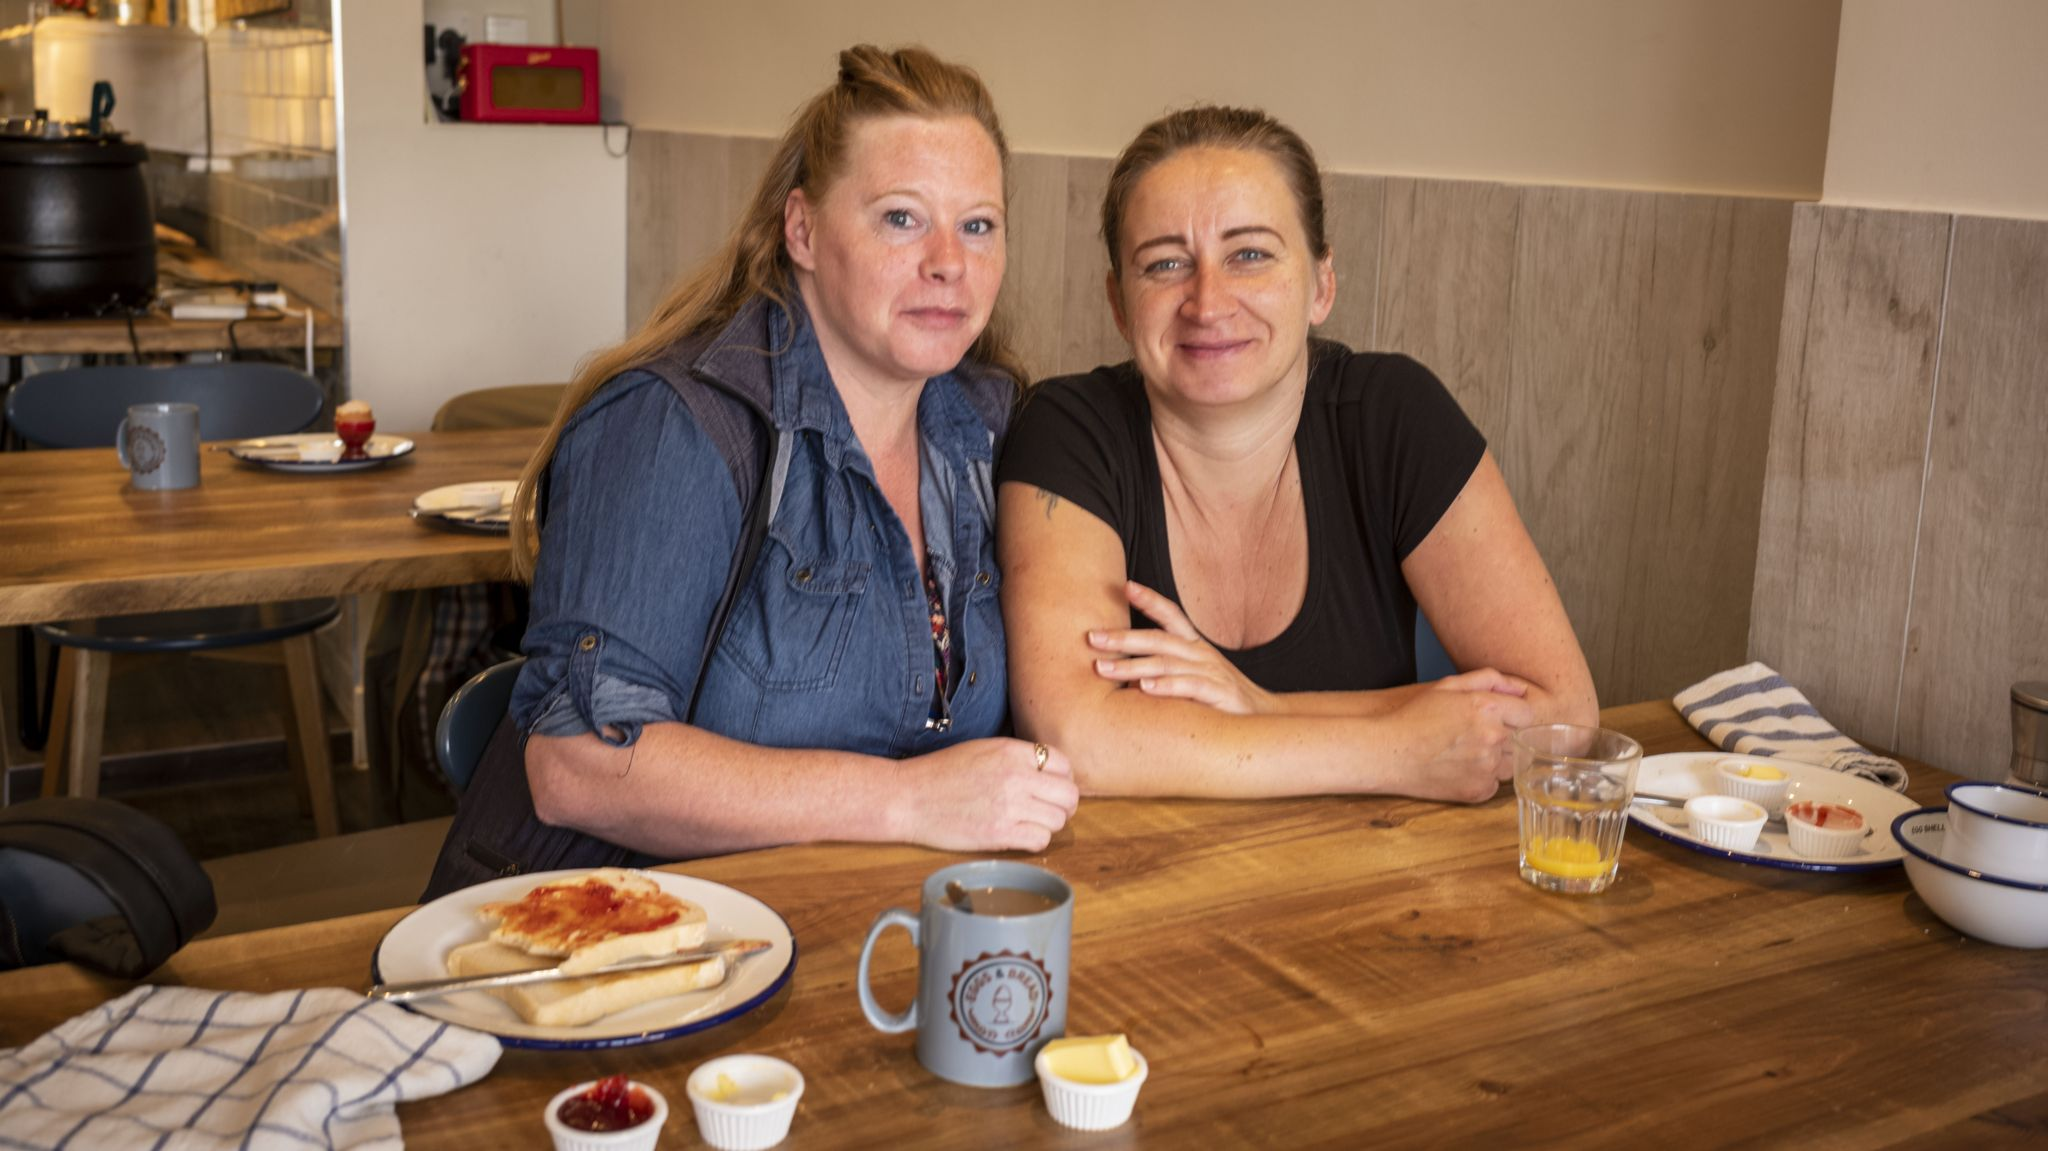 Julie and Kate are regulars at Egg & Bread